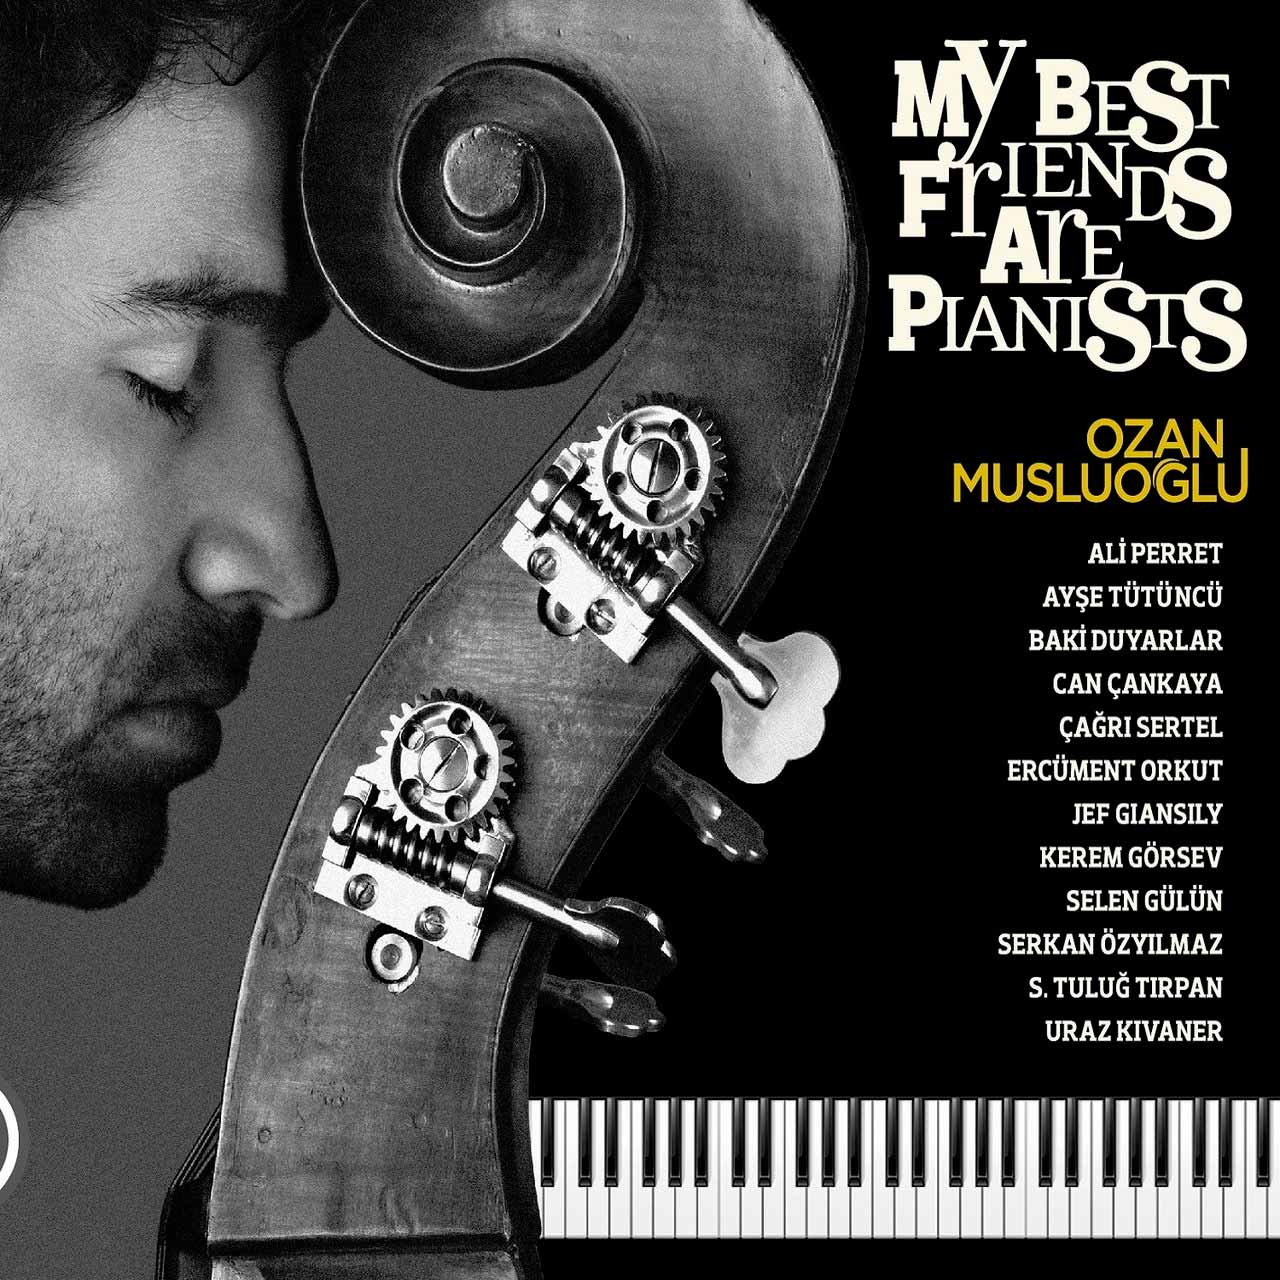 Ozan Musluoğlu - My Best Friends Are Pianists